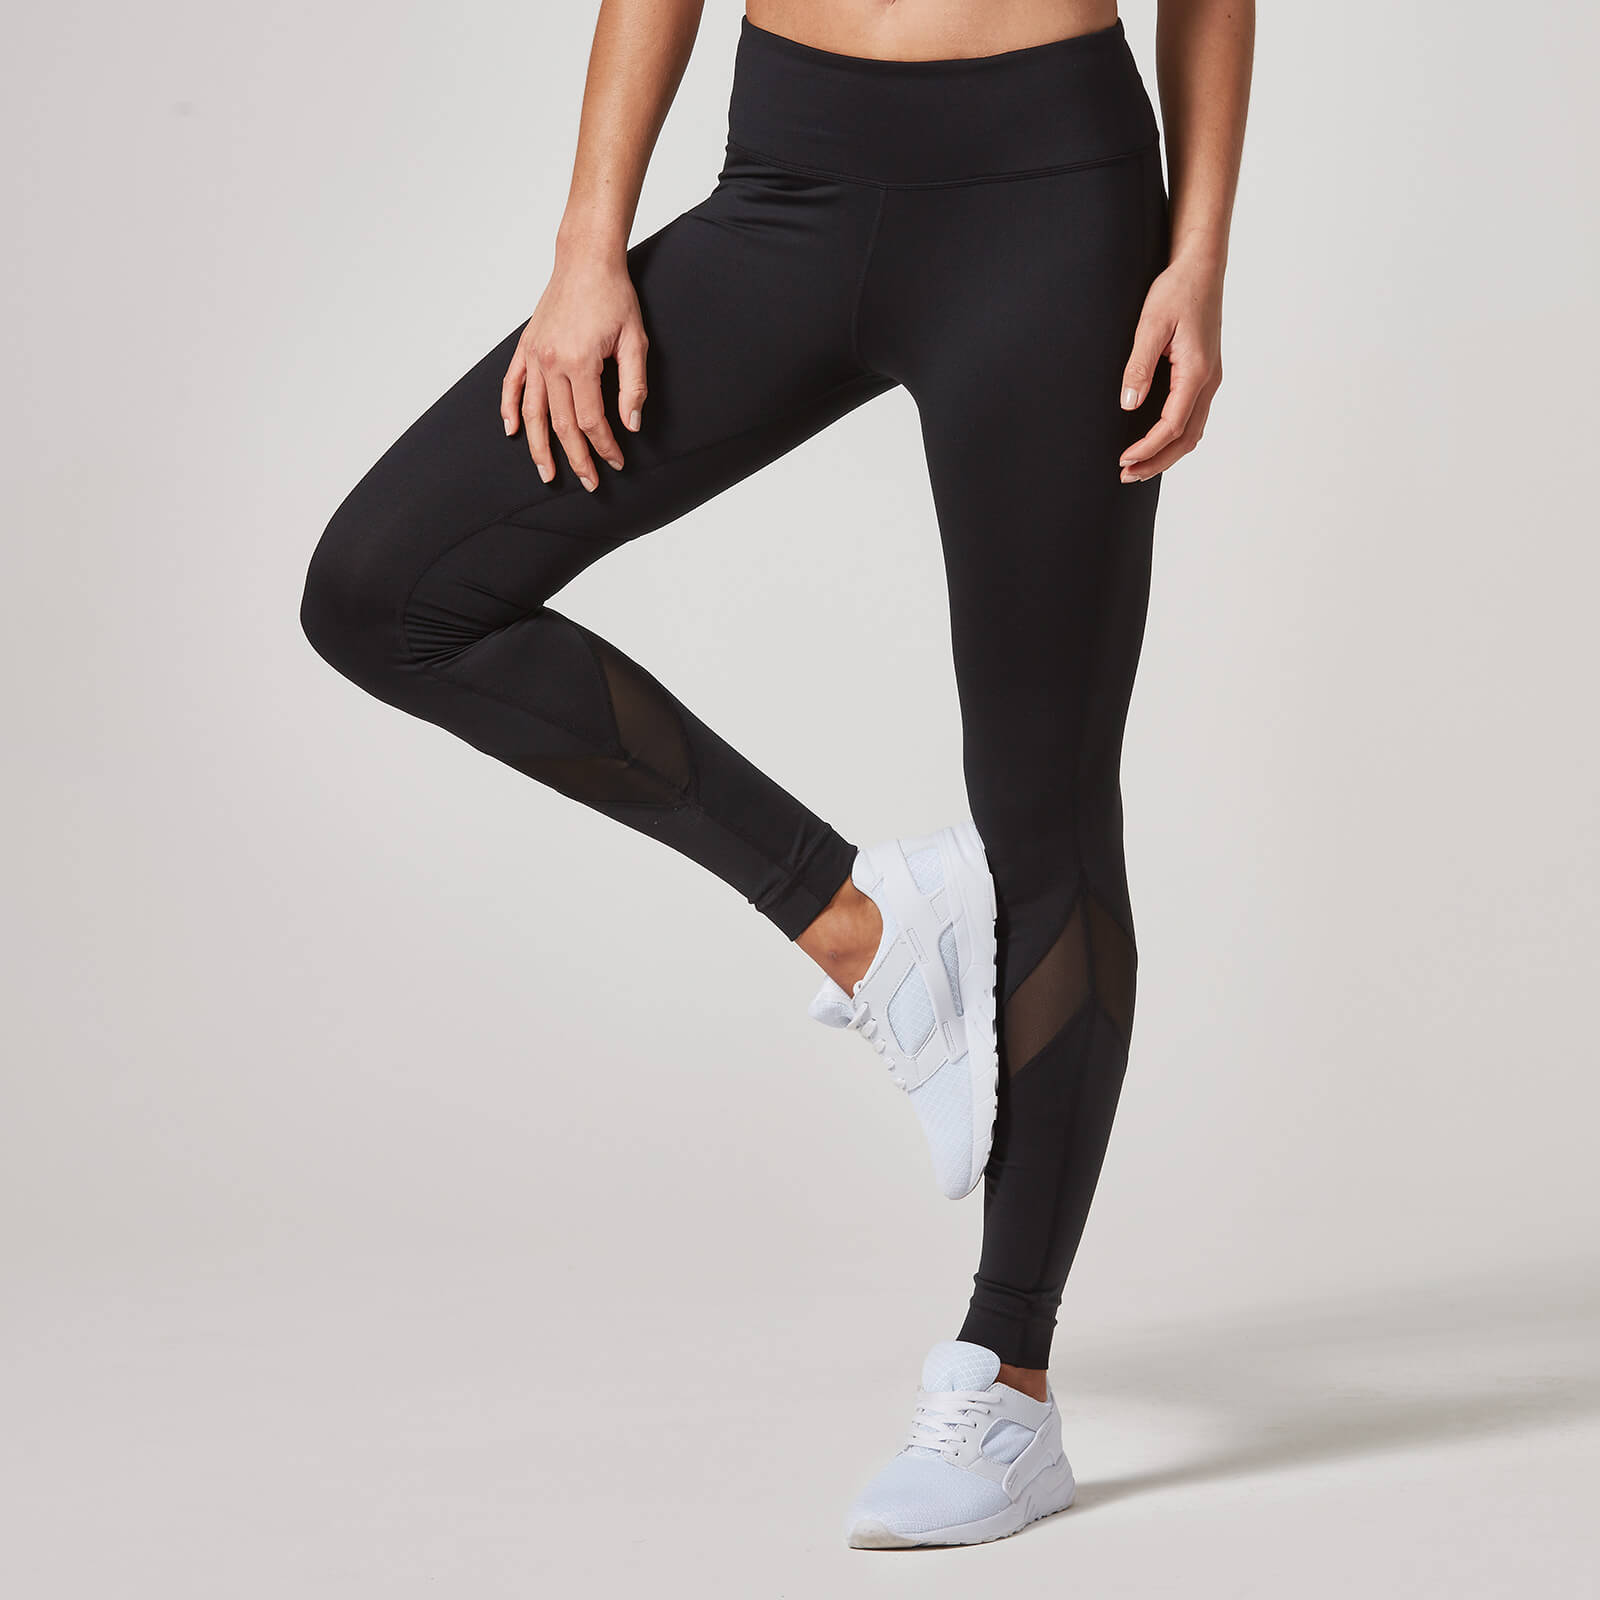 Heartbeat Full-Length Leggings - Black, XS